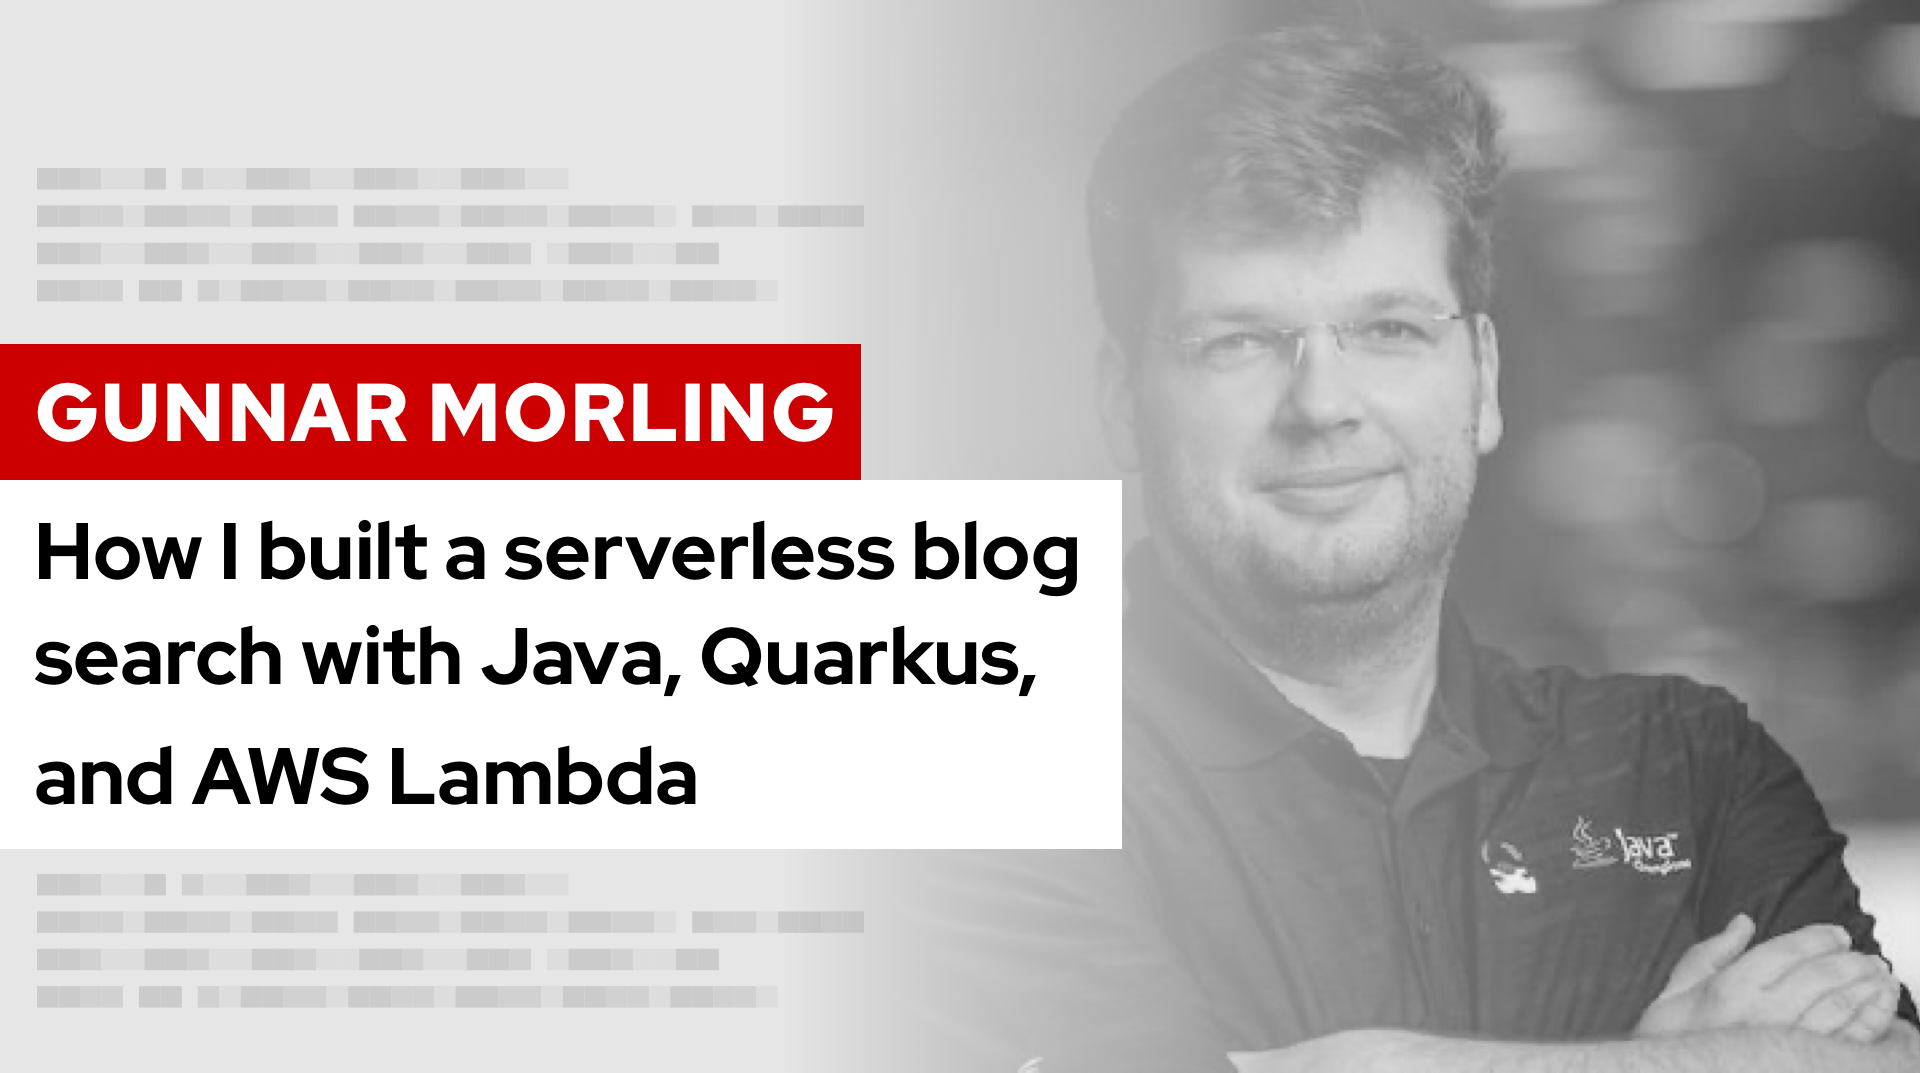 How I built a serverless blog search with Java, Quarkus, and AWS Lambda